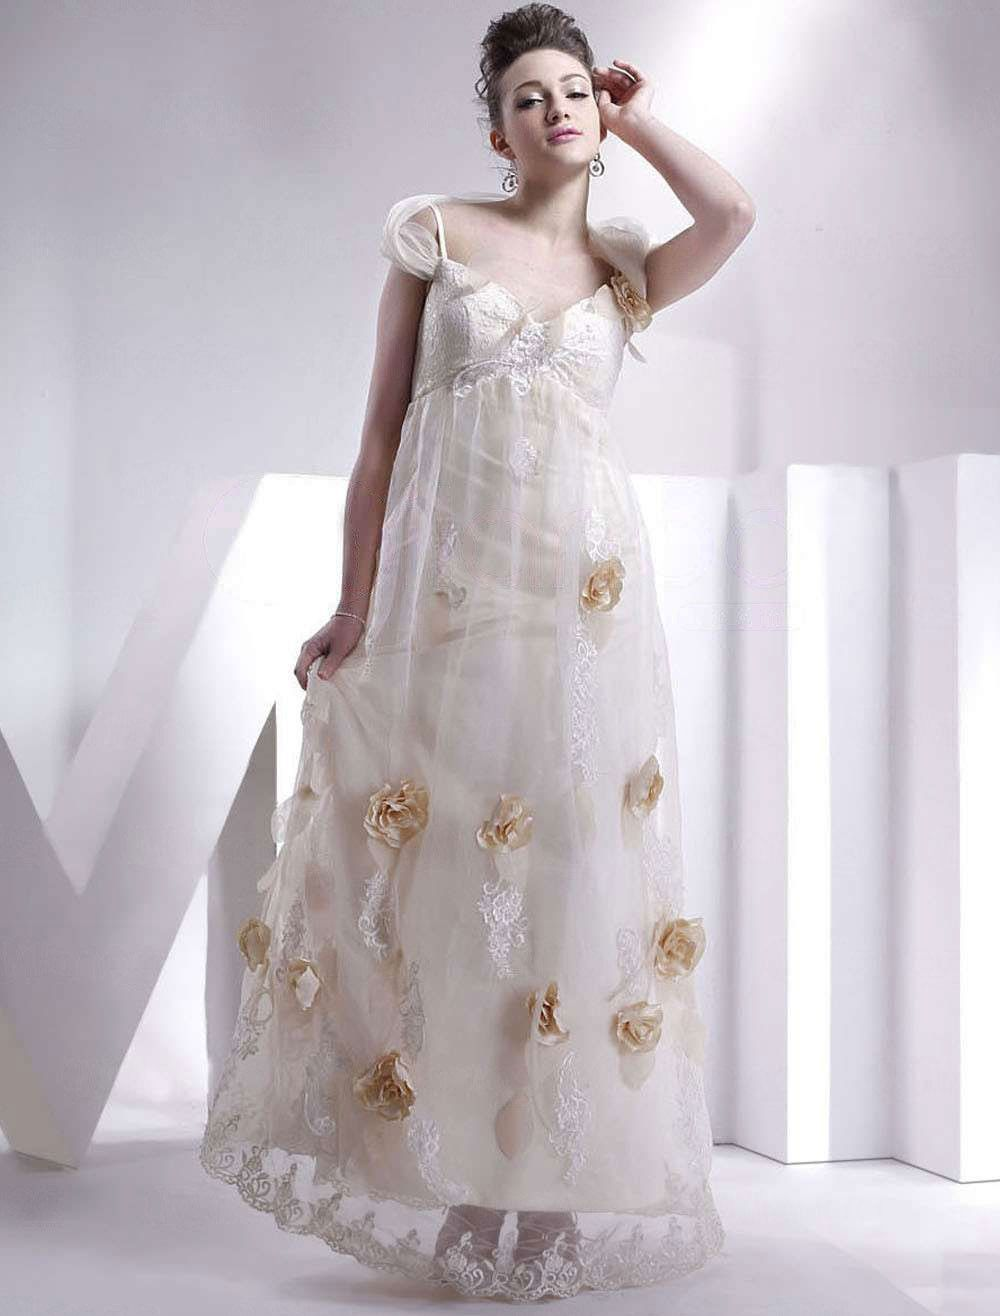 White maternity wedding dress  Lace Casual Spaghetti Applique OffTheShoulder Floor Length Satin